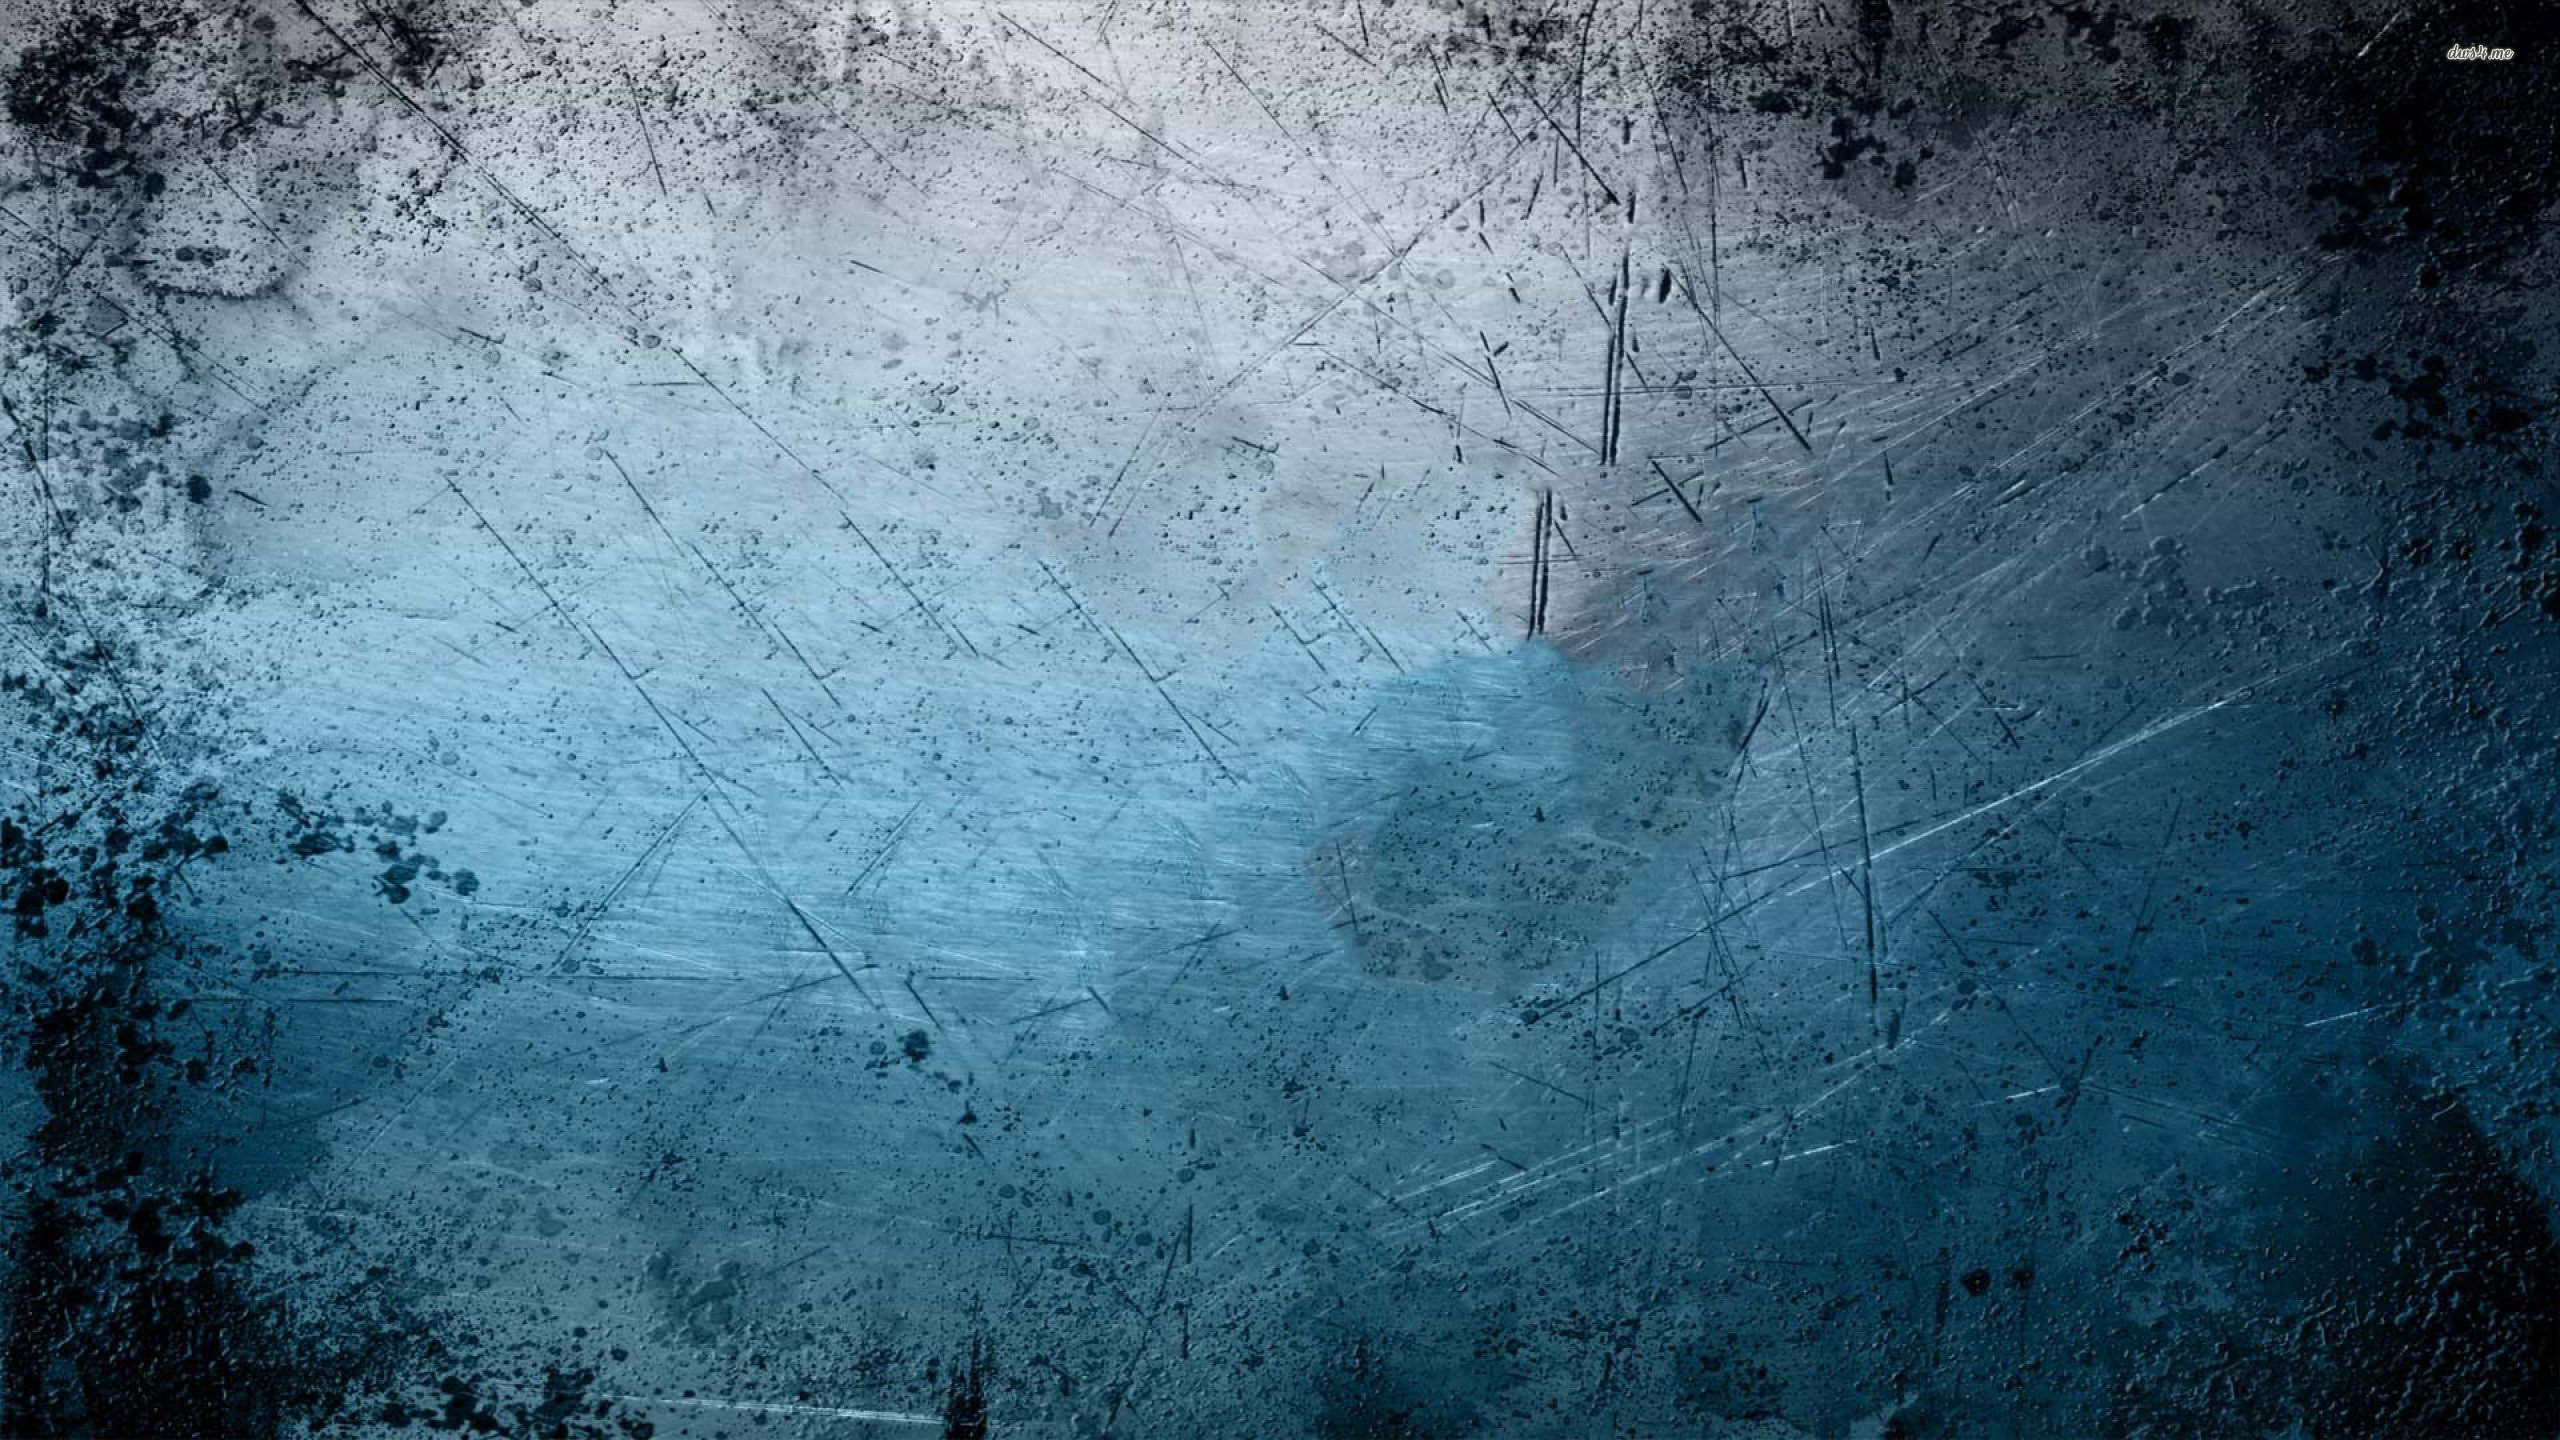 Blue scratched texture wallpaper – Abstract wallpapers – #22123